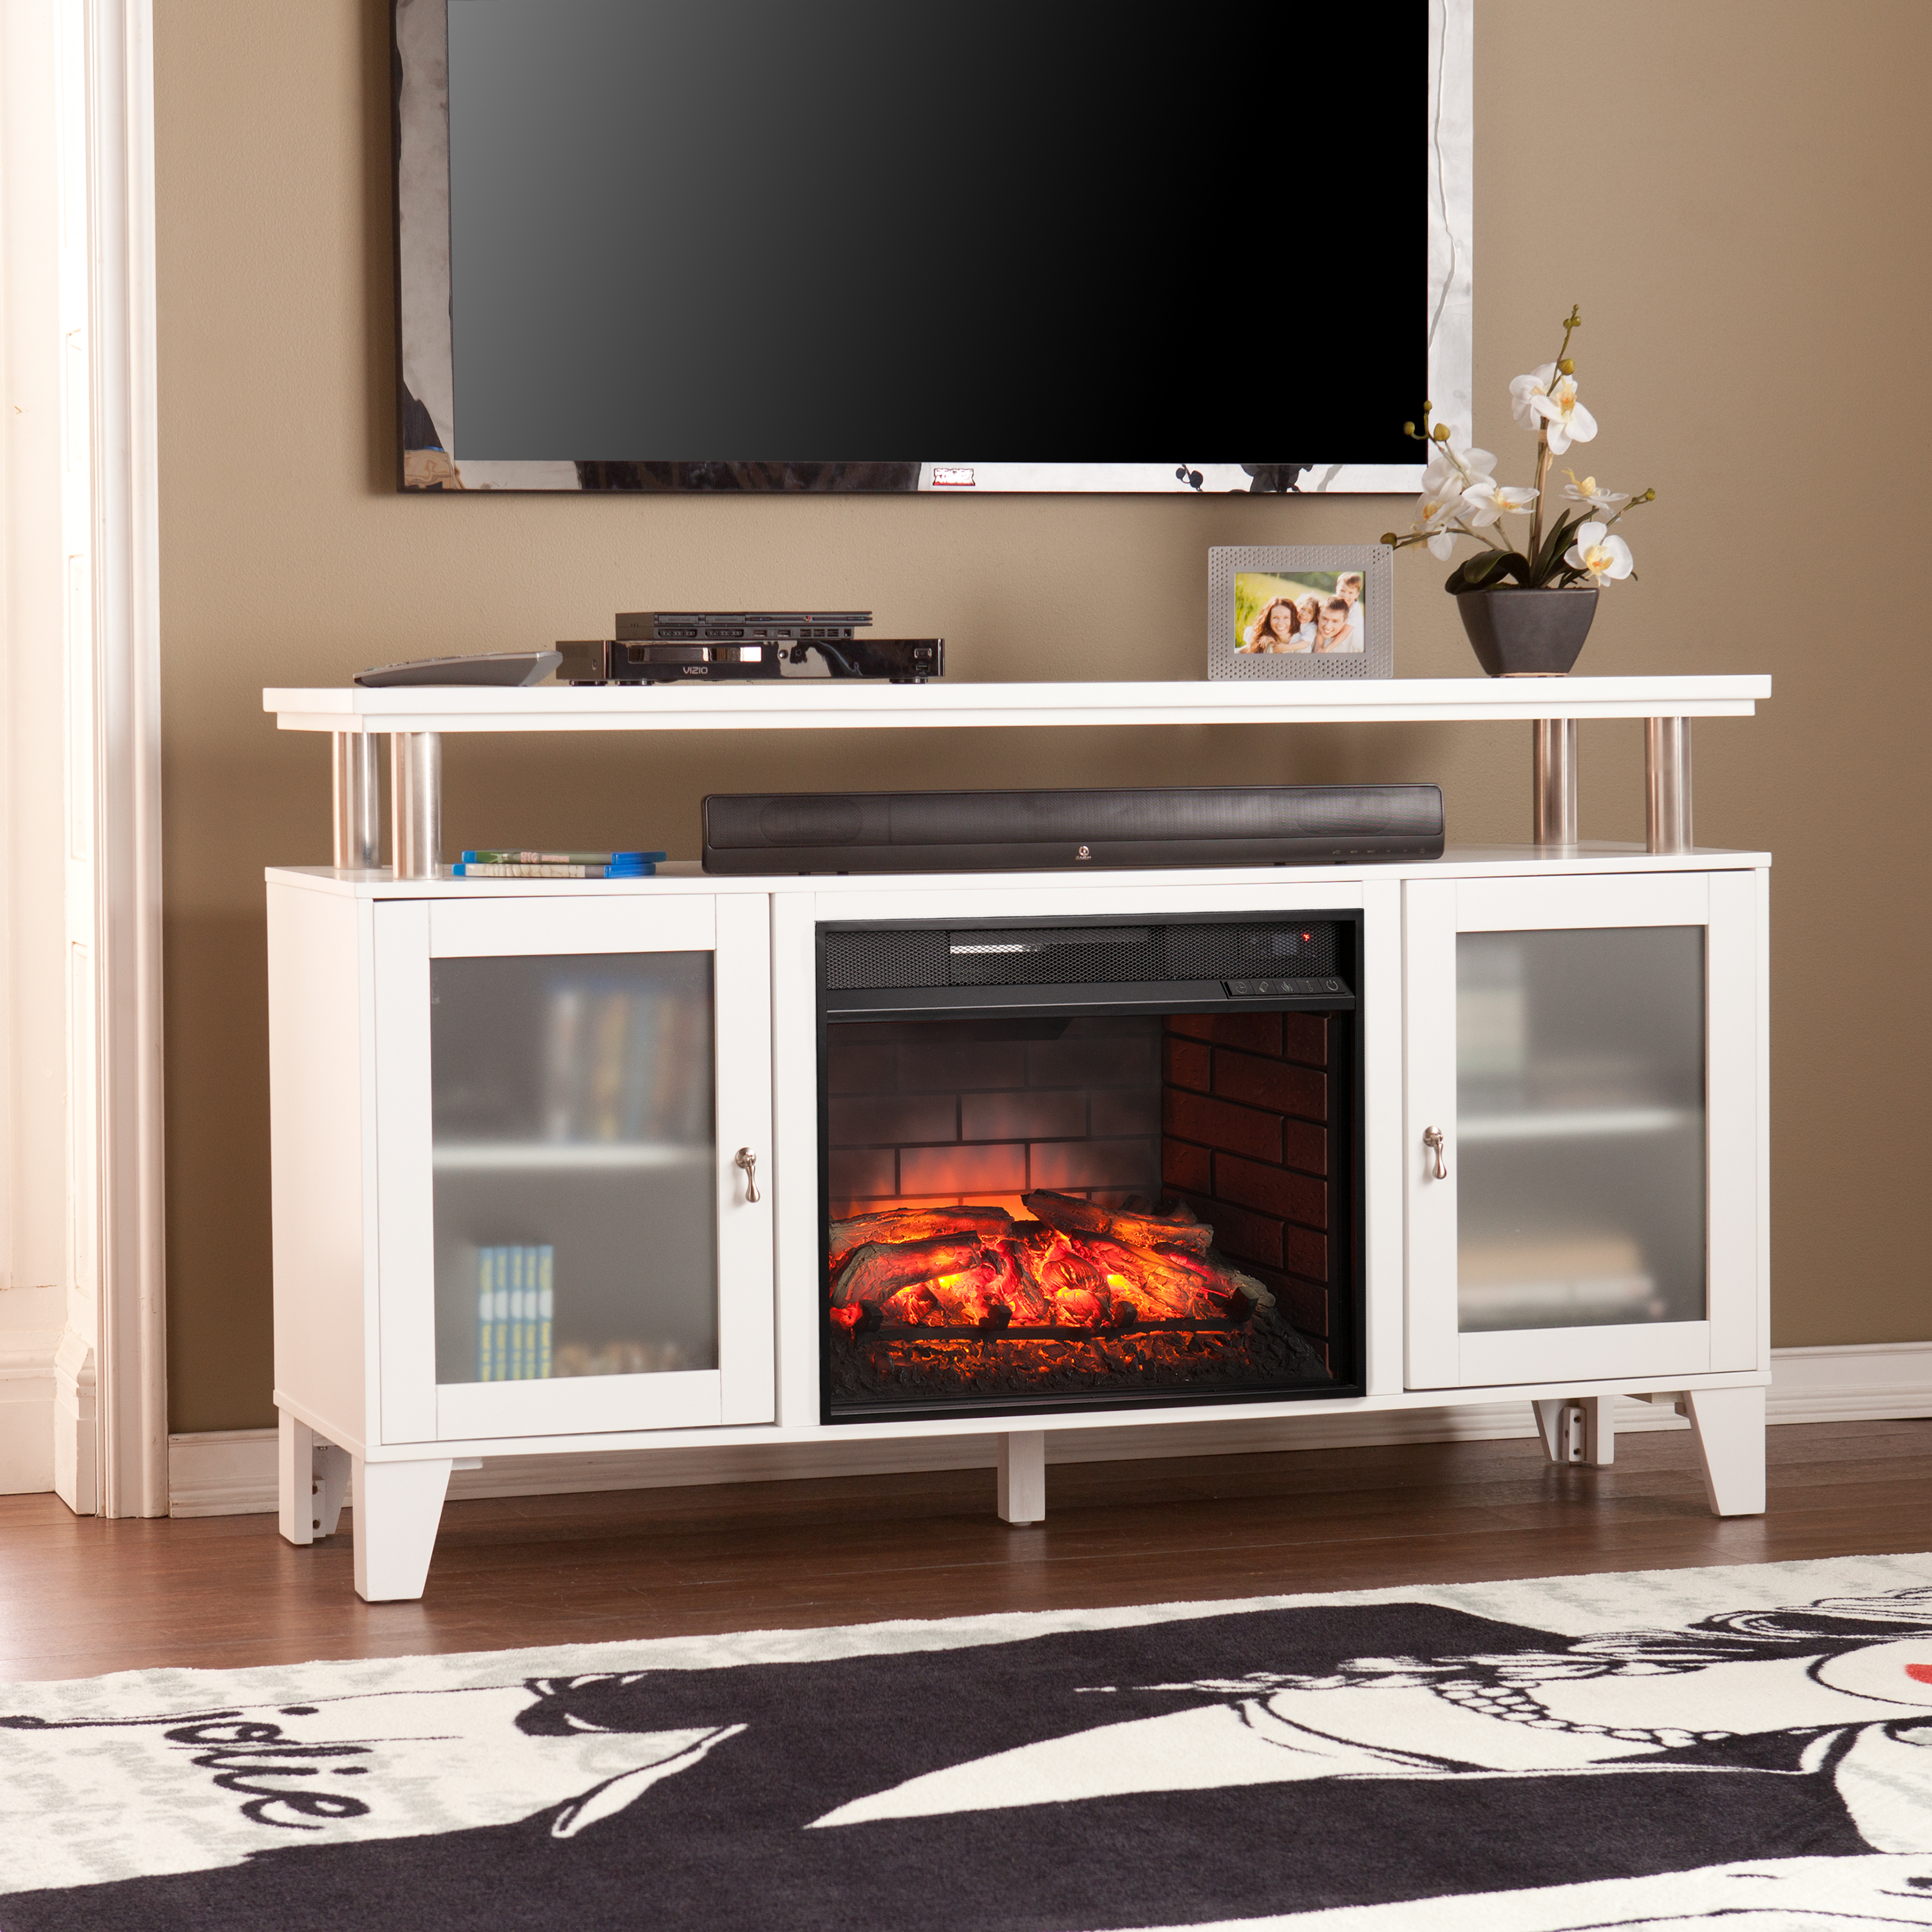 finish in cherry espresso fireplaces xiorex mantel w electric firebox monaghan greenway media fireplace by